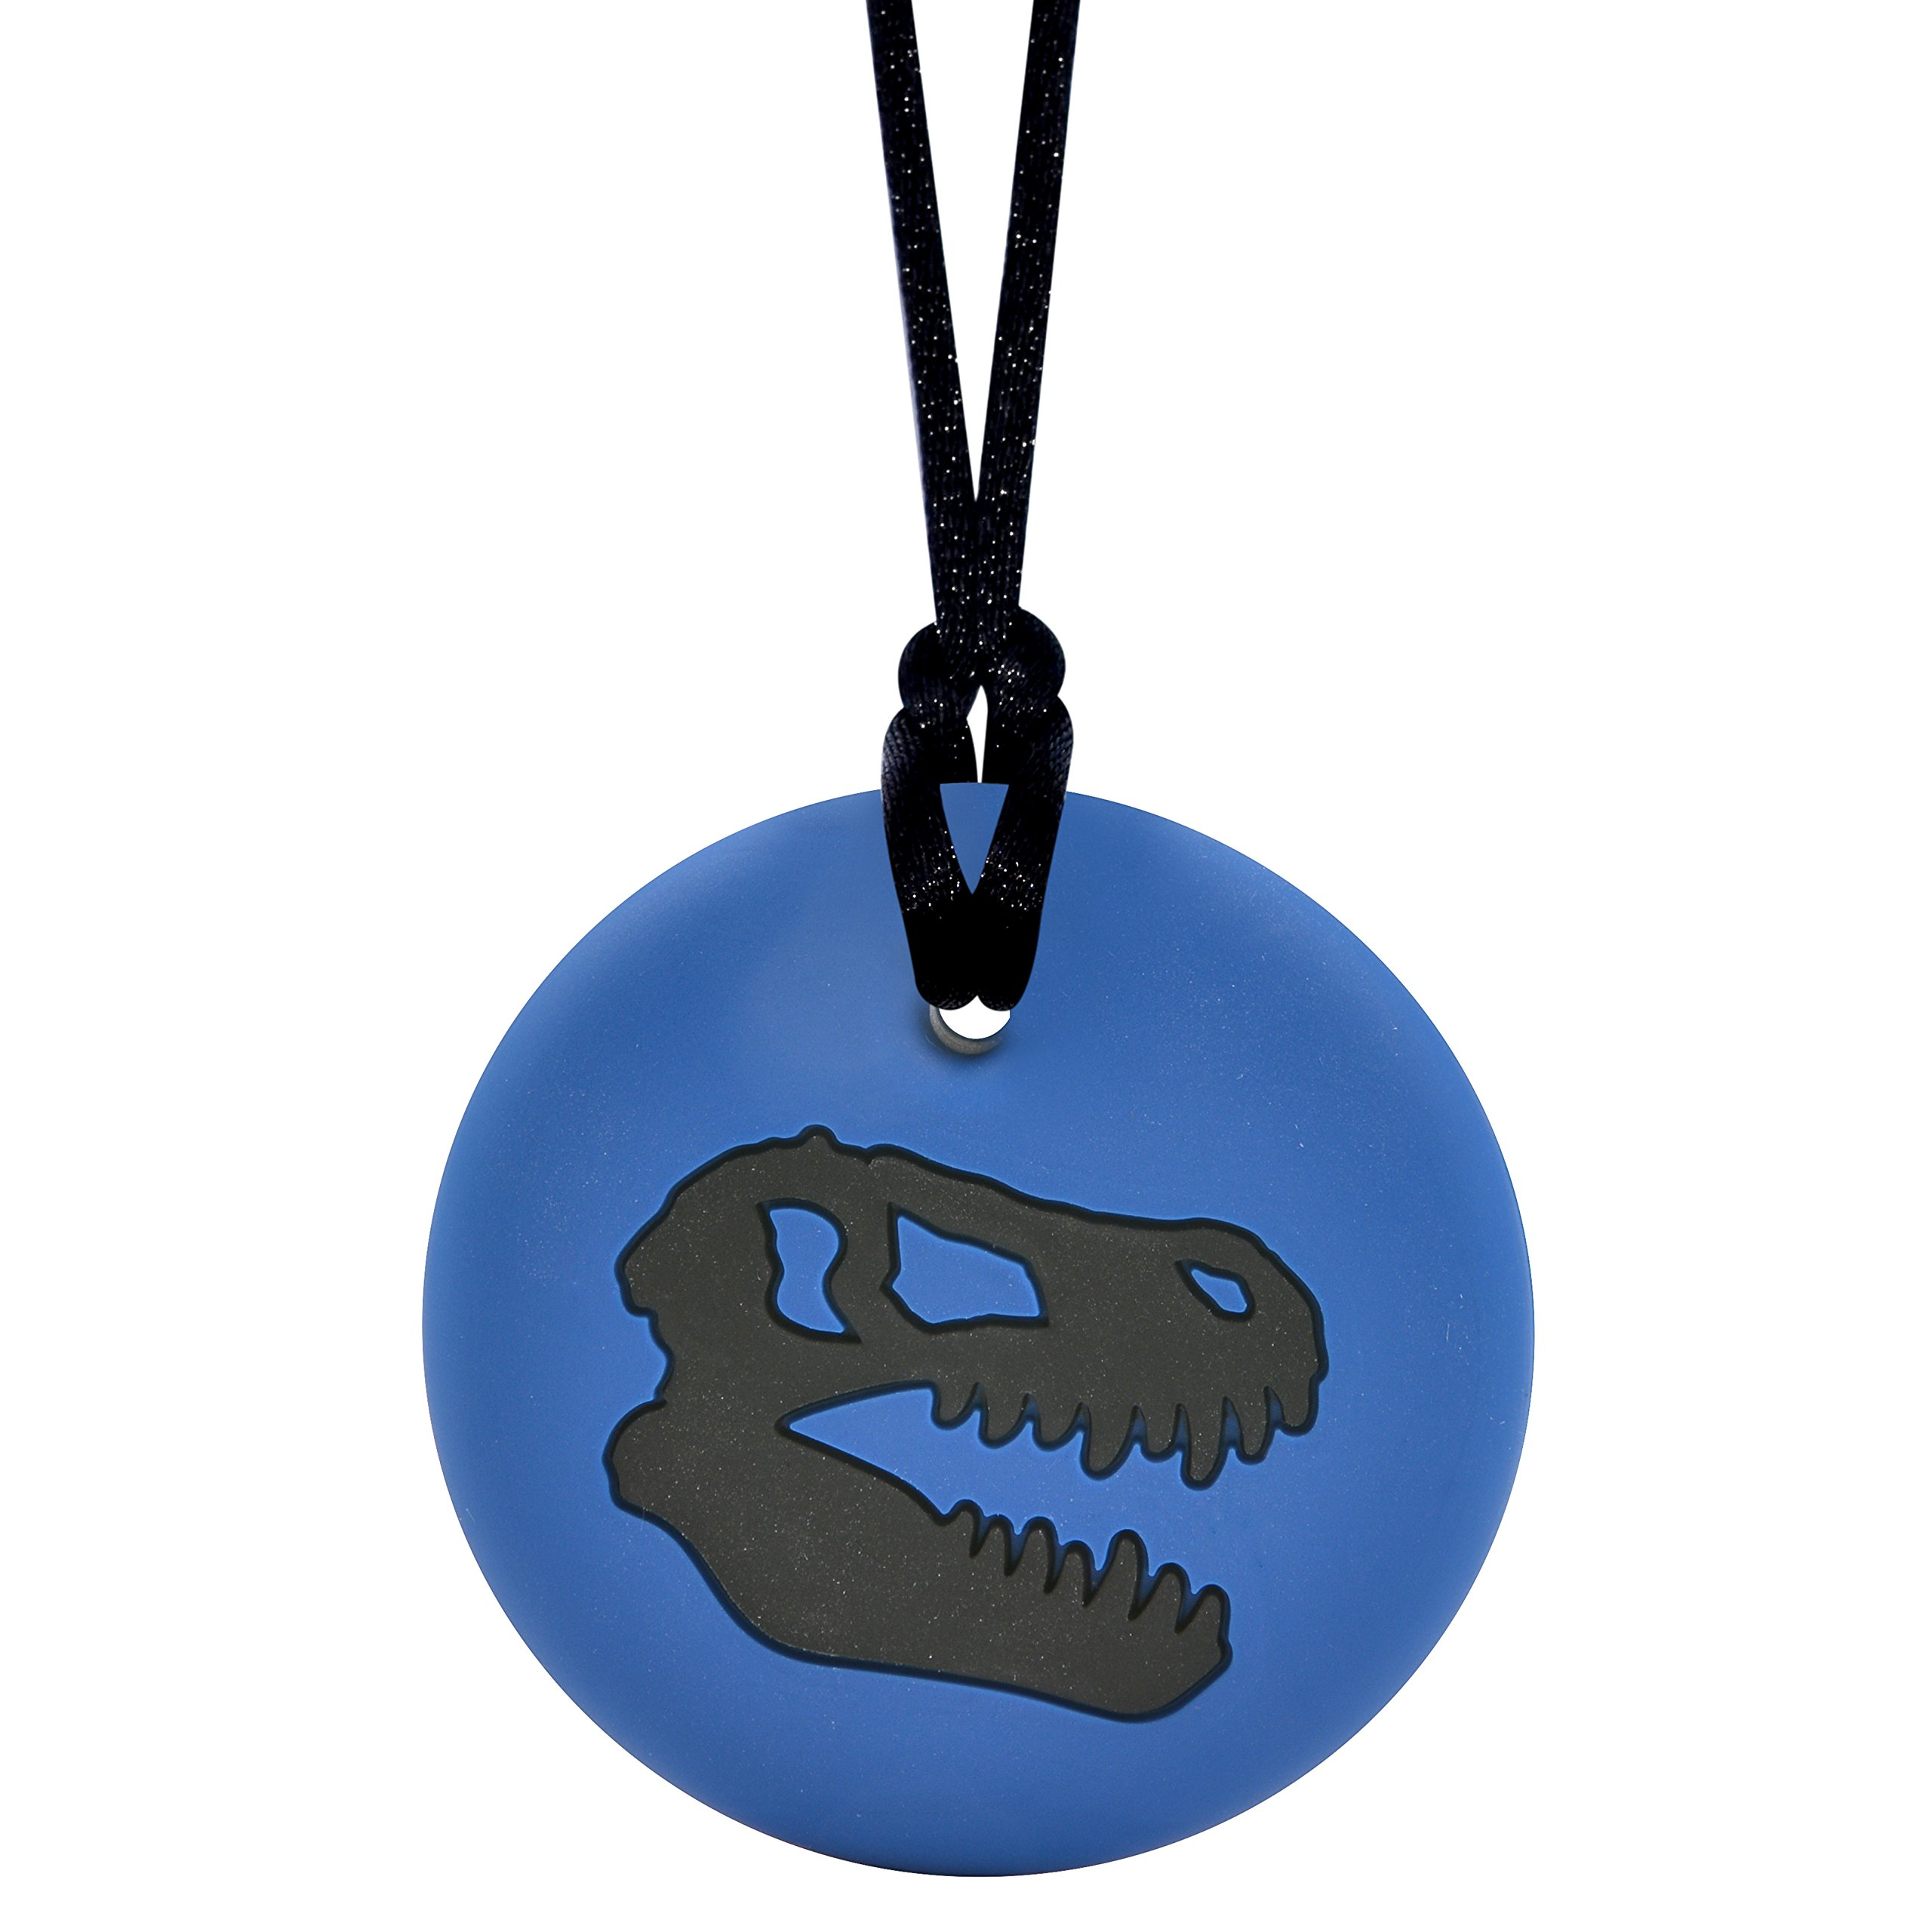 Dinosaur Skull Sensory Chewelry - Munchables Chew Necklace (Navy/Black)